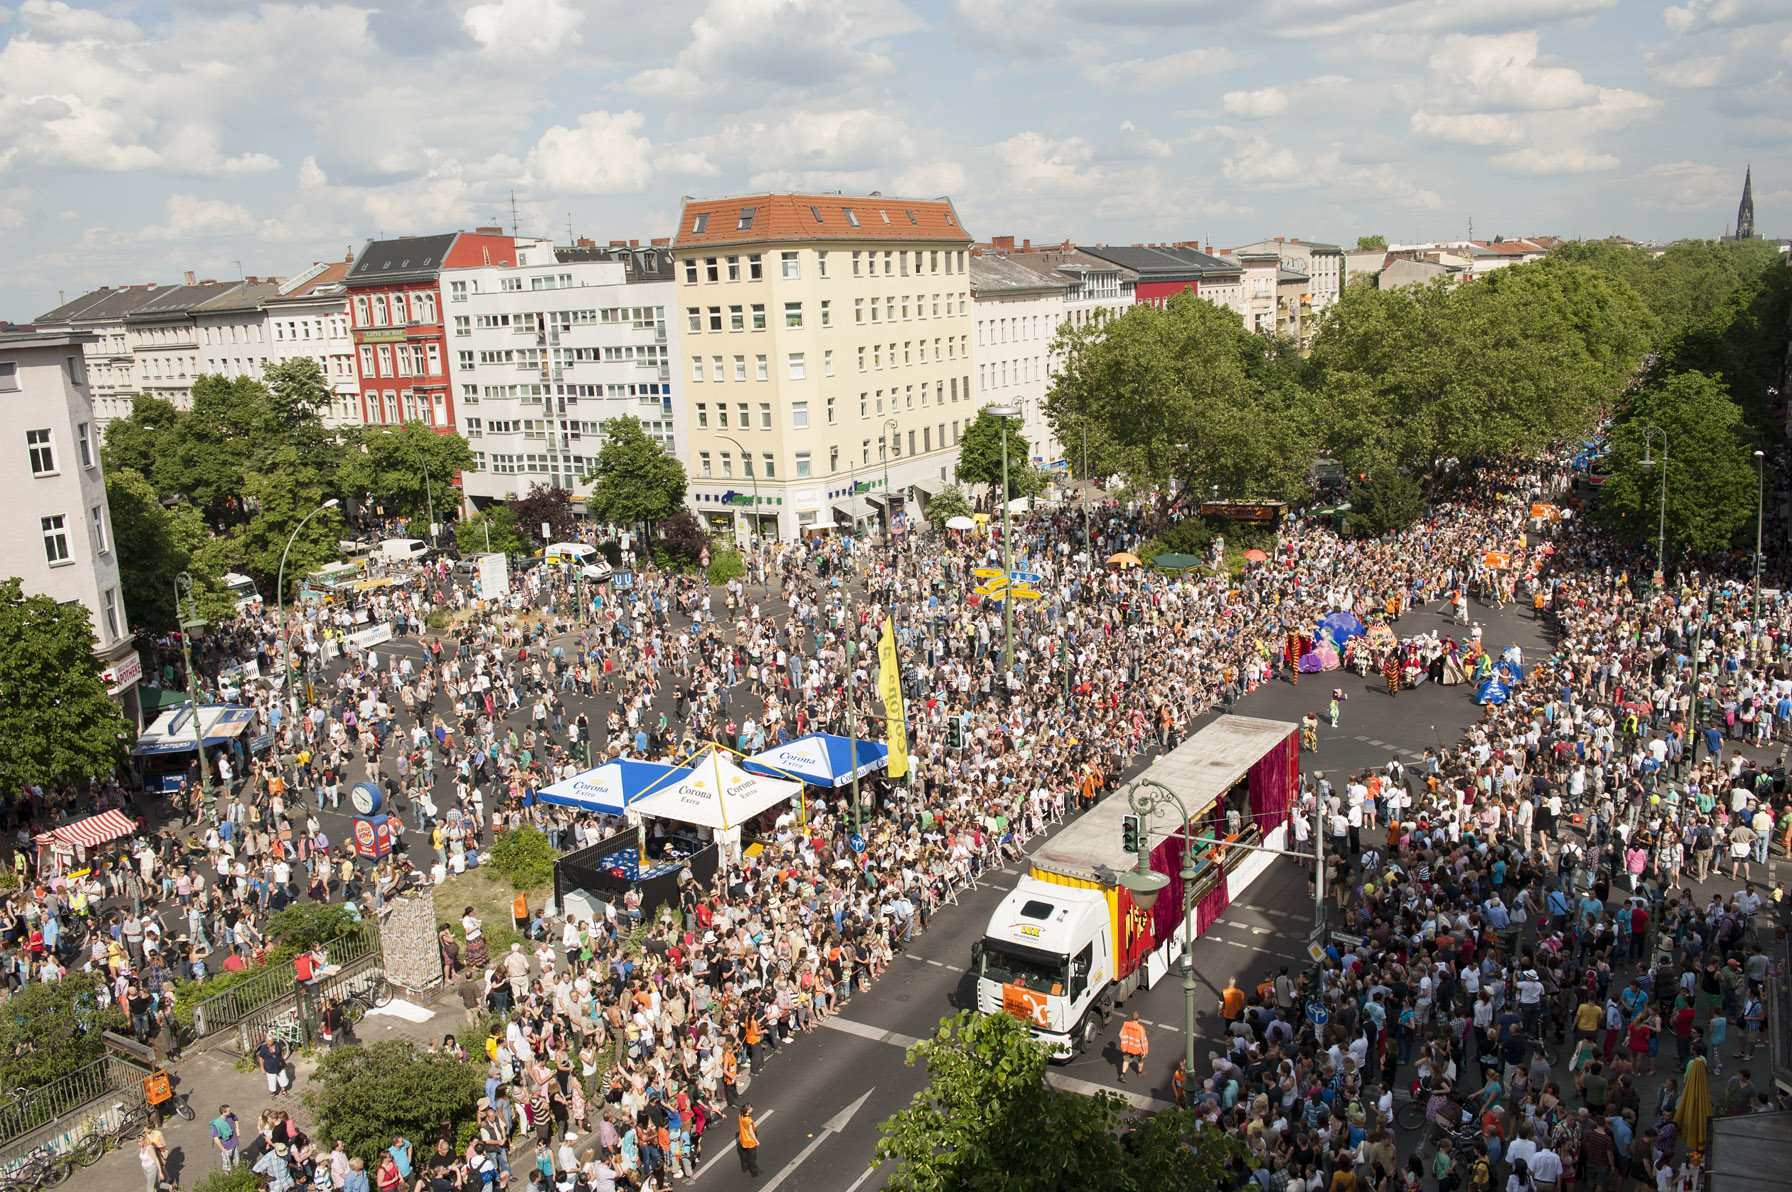 Karneval der Kulturen | Carnival of Cultures © visitBerlin, Foto: Philip Koschel (CC BY-NC-ND 2.0)